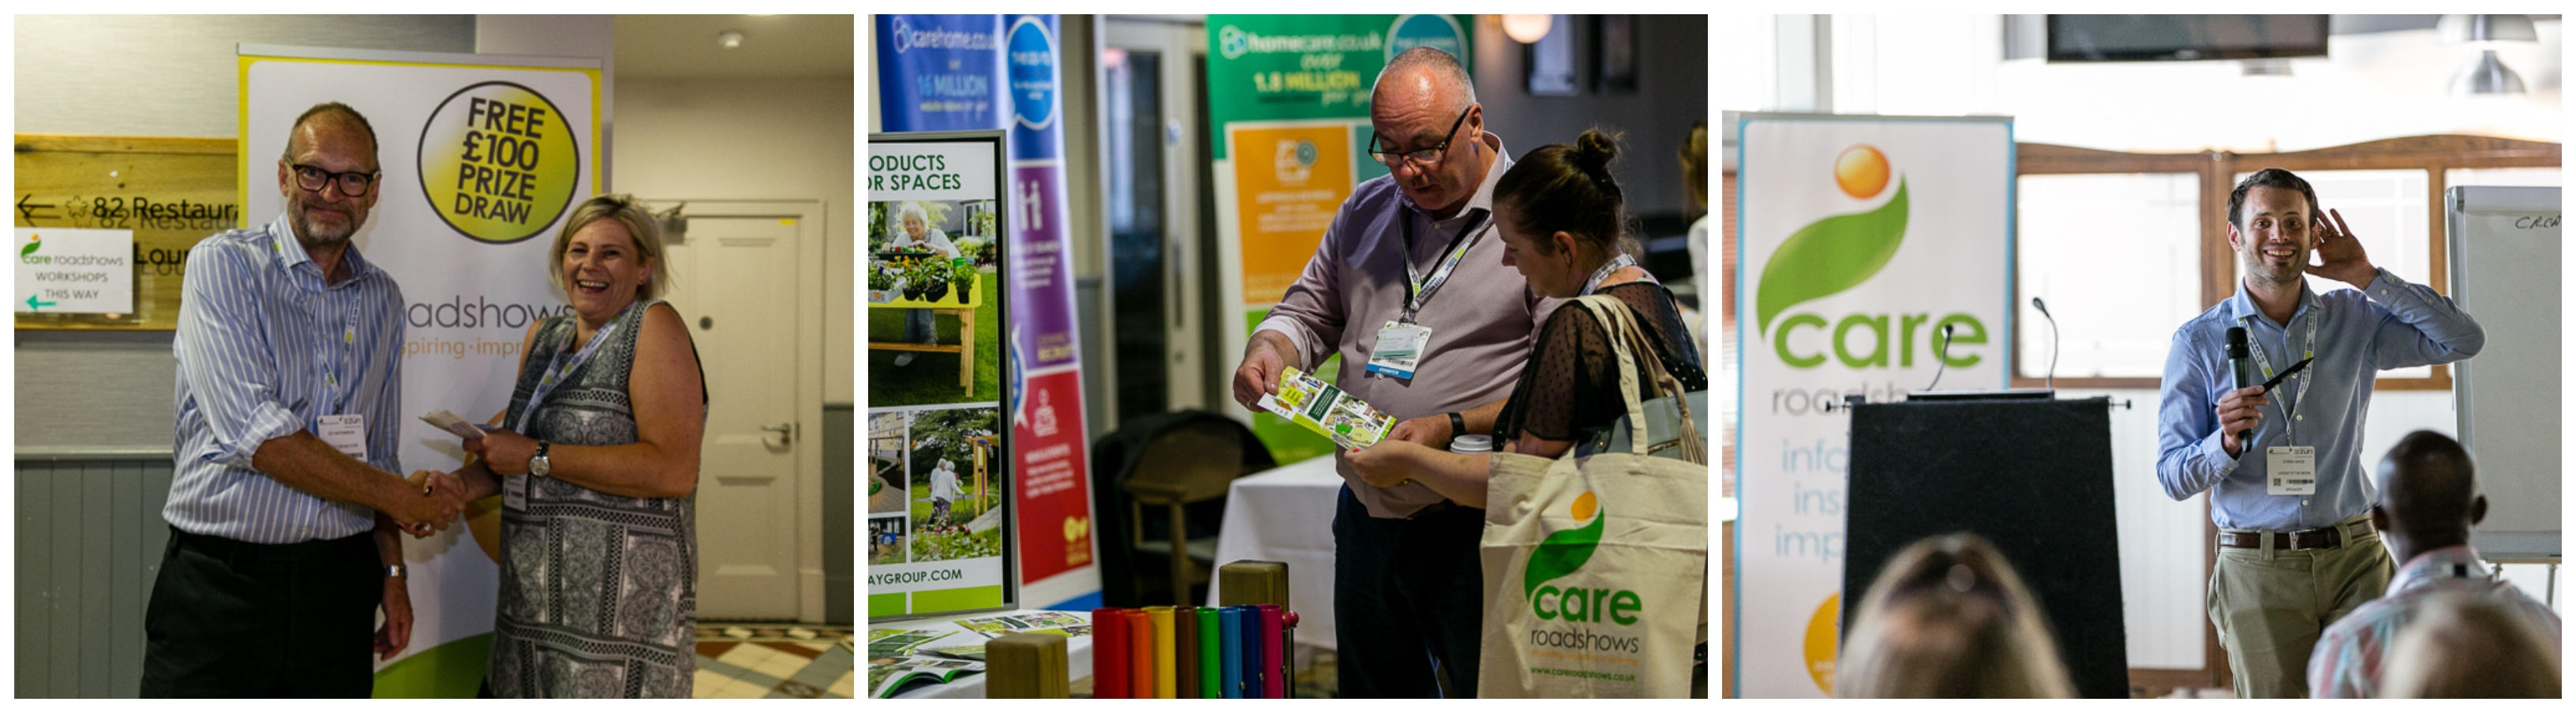 Care and Dementia Show